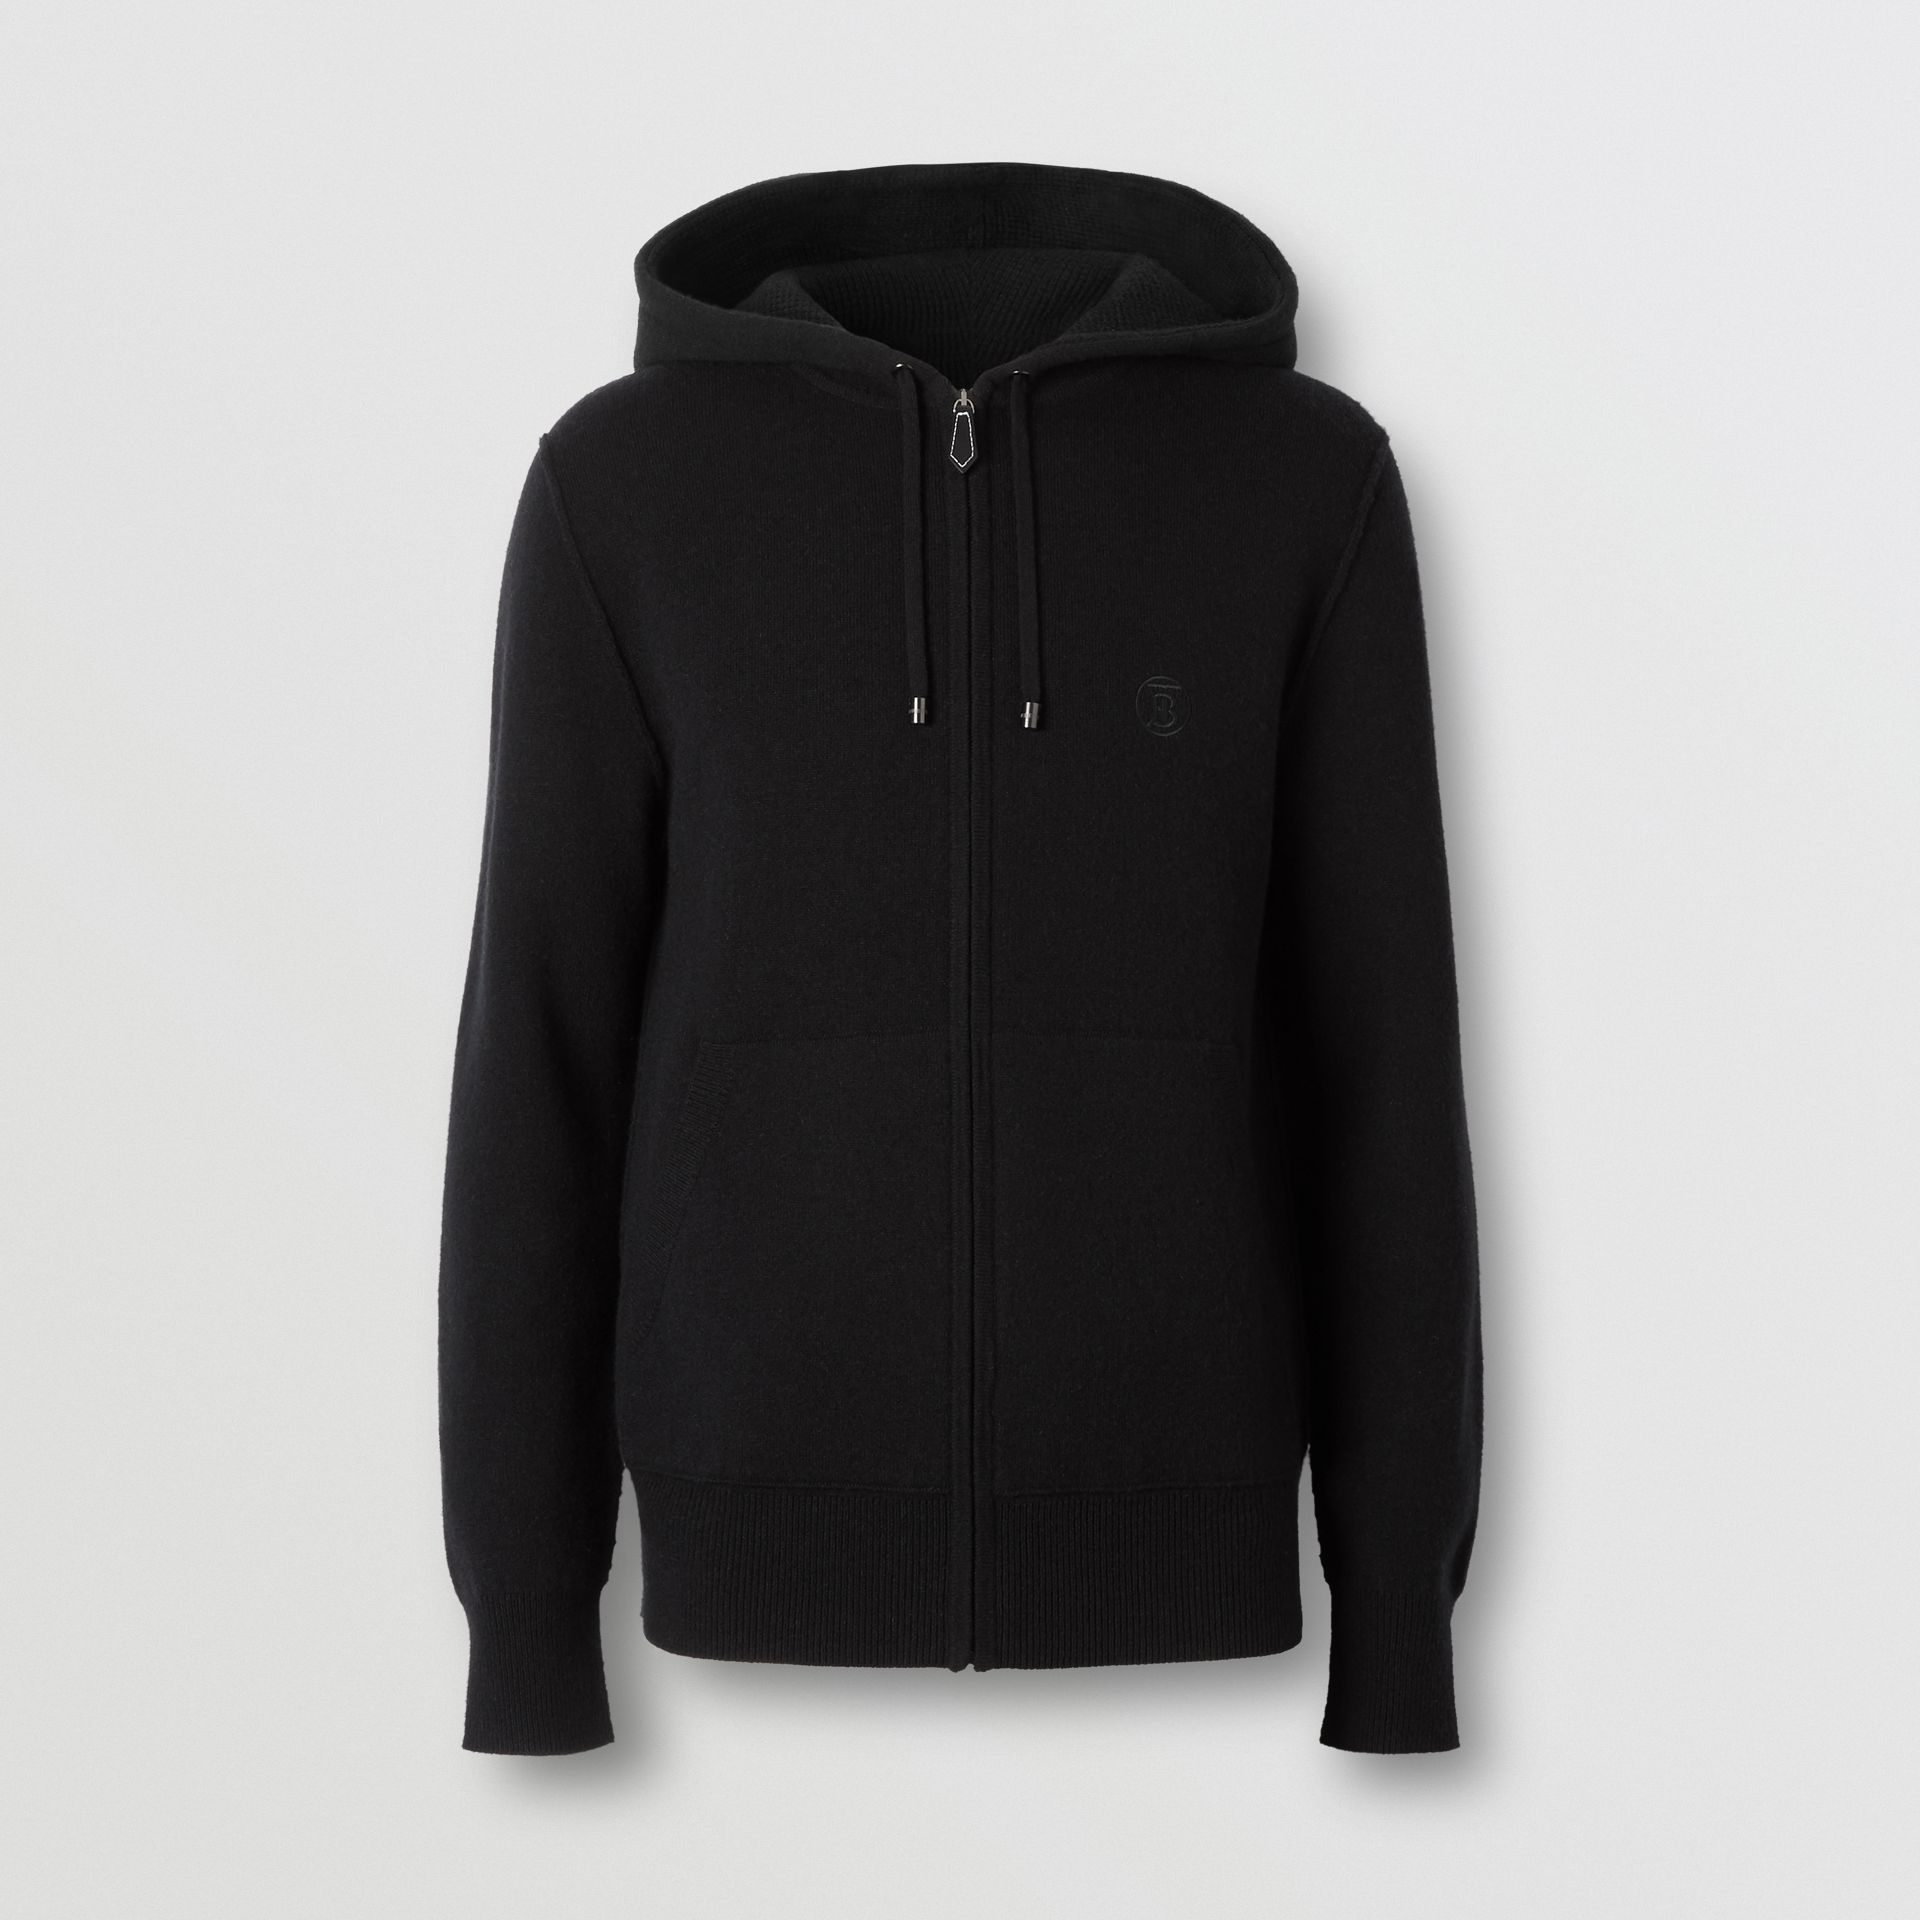 Monogram Motif Cashmere Blend Hooded Top in Black - Men | Burberry - gallery image 3